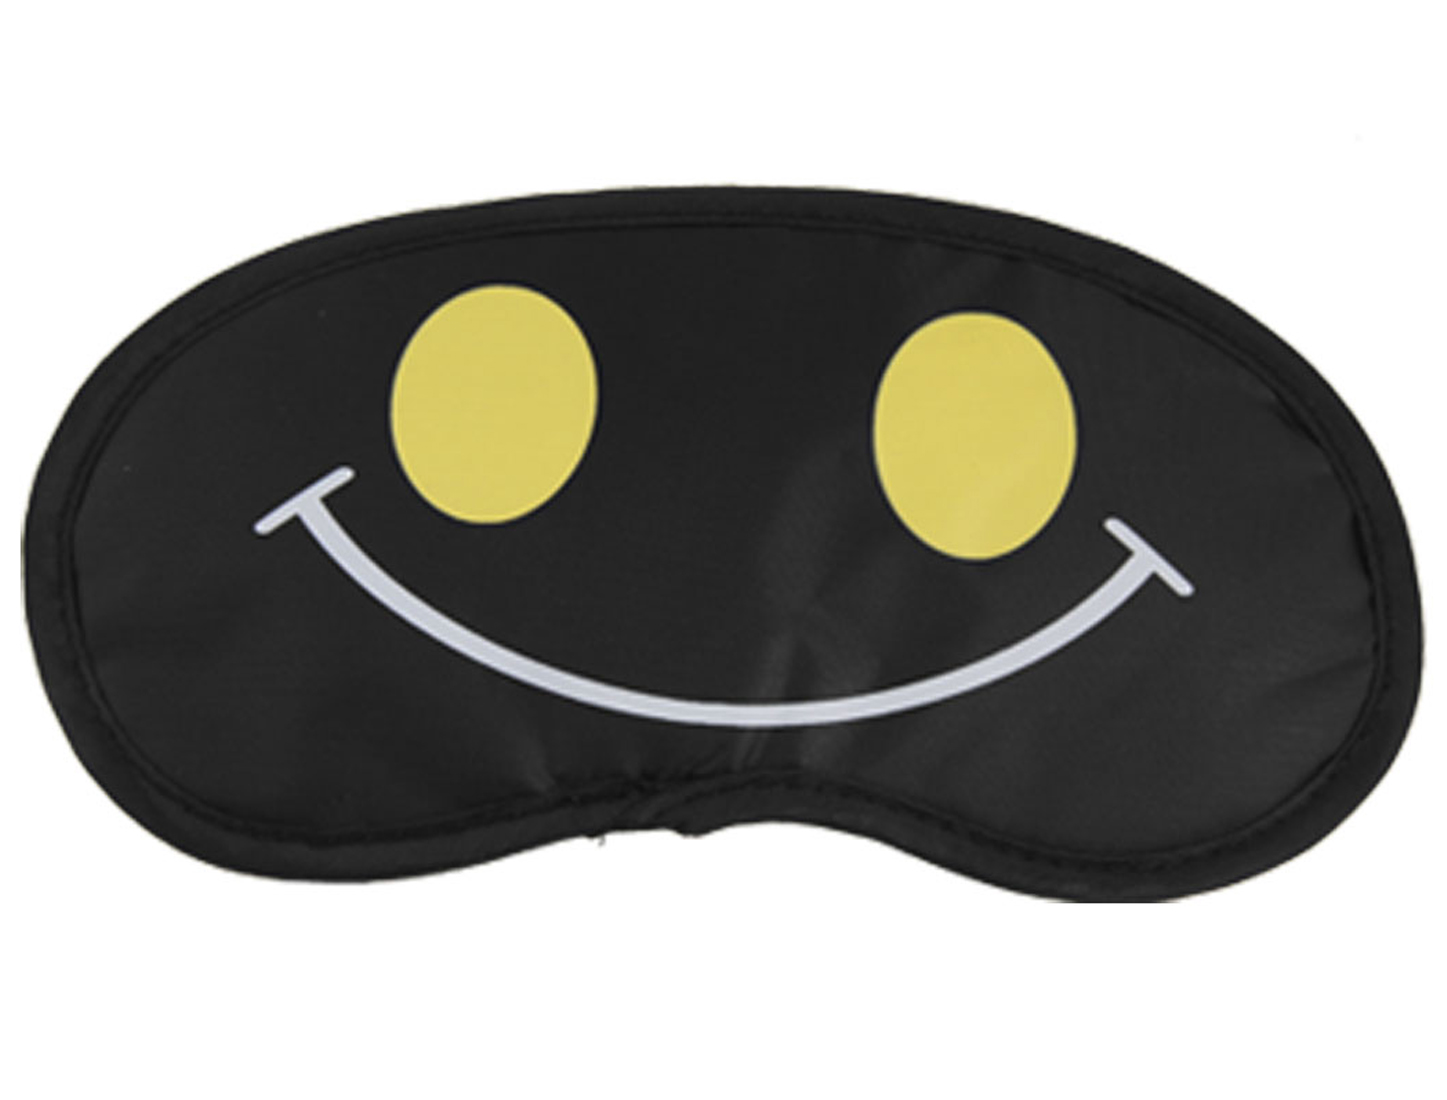 2 Pcs Black Smiling Facial Expression Pattern Sleep Eye Mask Protector Eyepatch